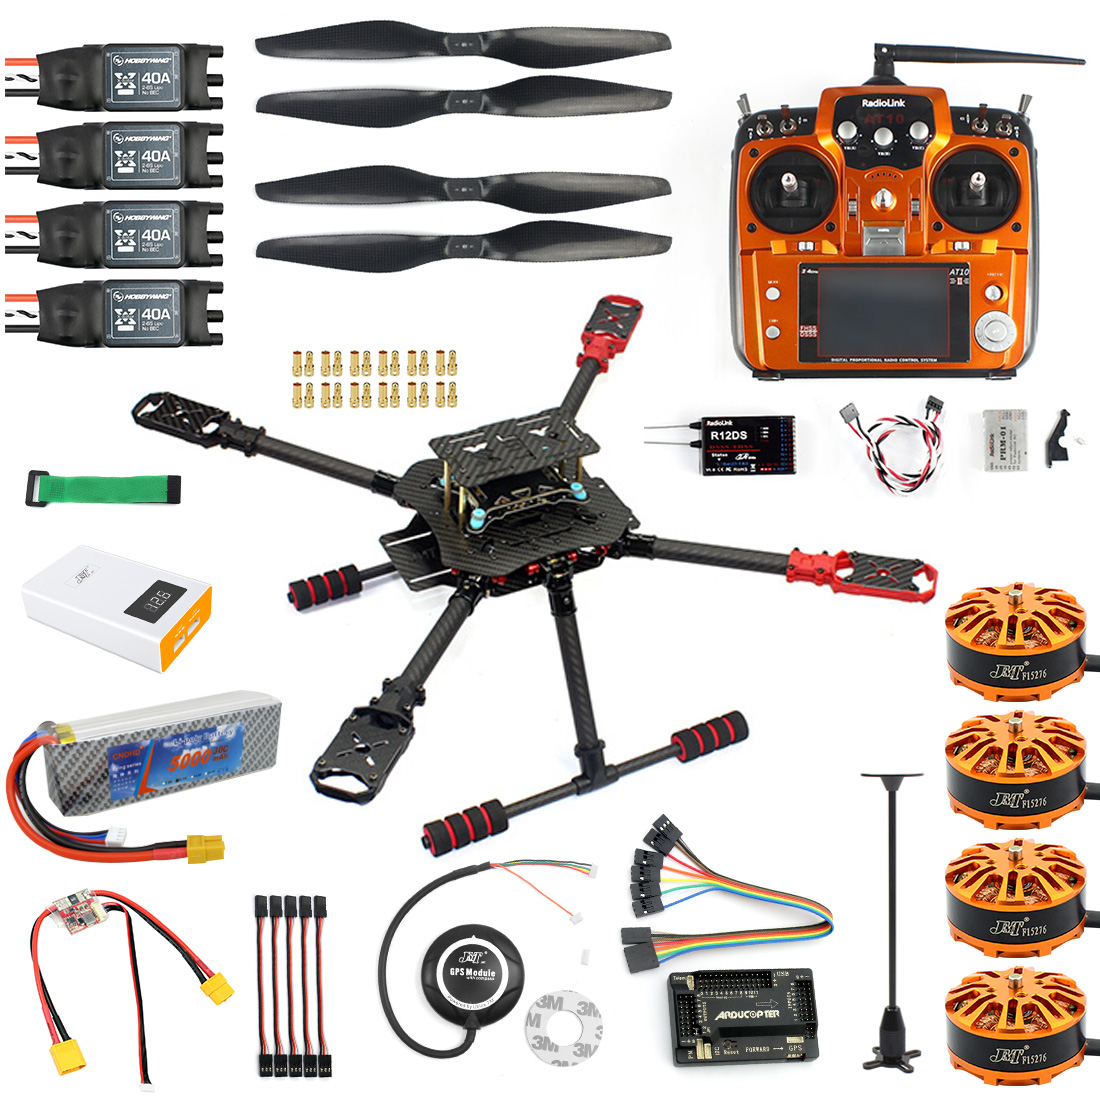 US$ 343 91 - DIY GPS Drone 2 4Ghz AT10 X4 560mm Umbrella Foldable